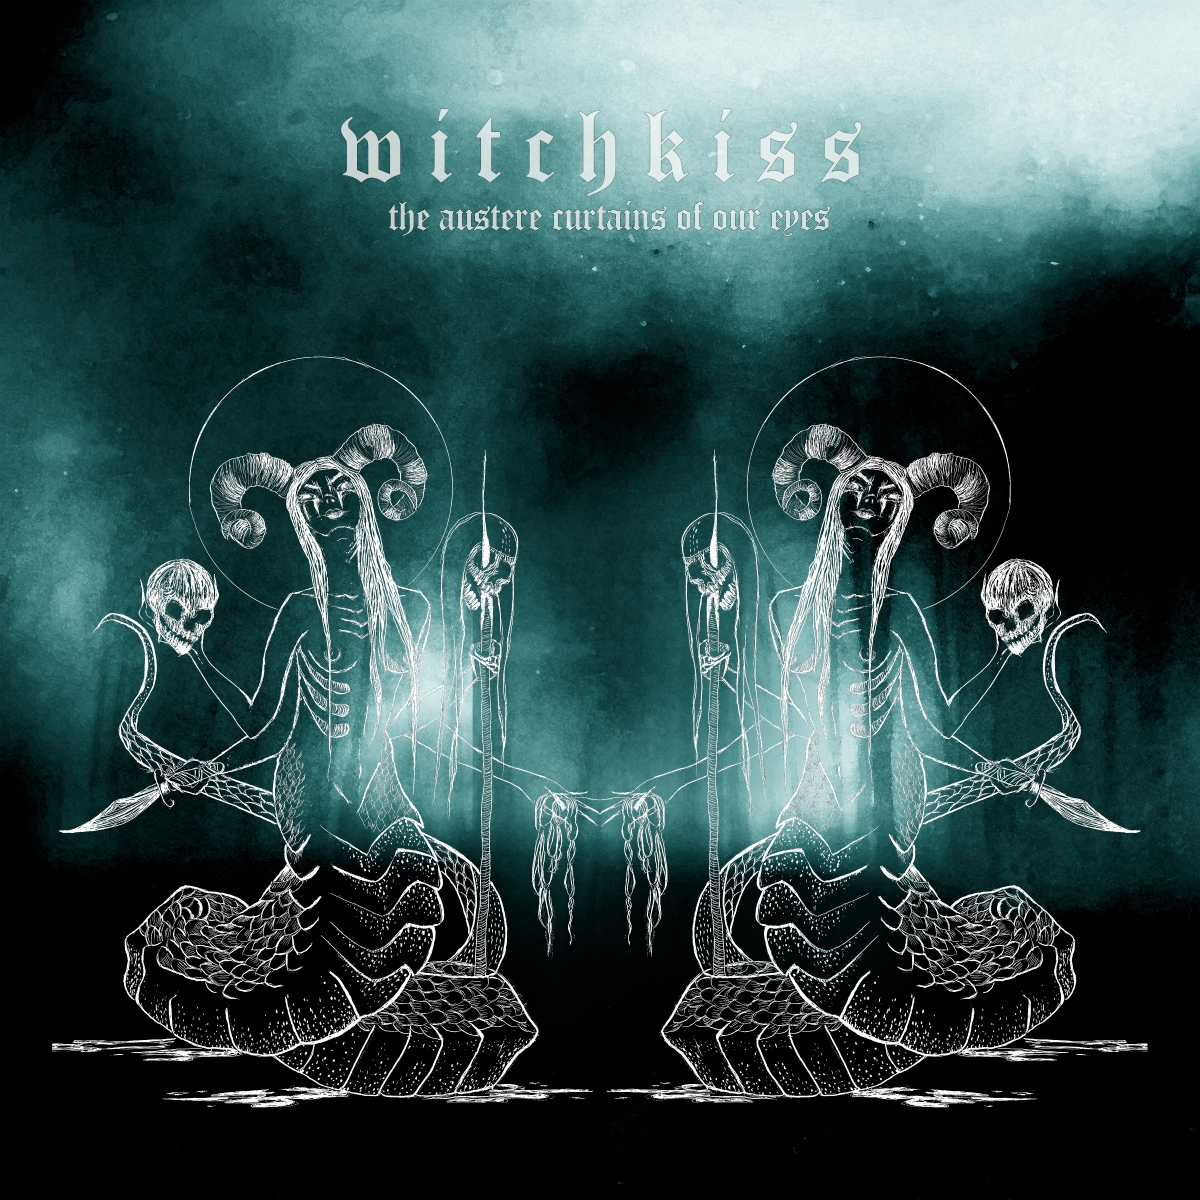 Witchkiss – The Austere Curtains of Our Eyes (Review)